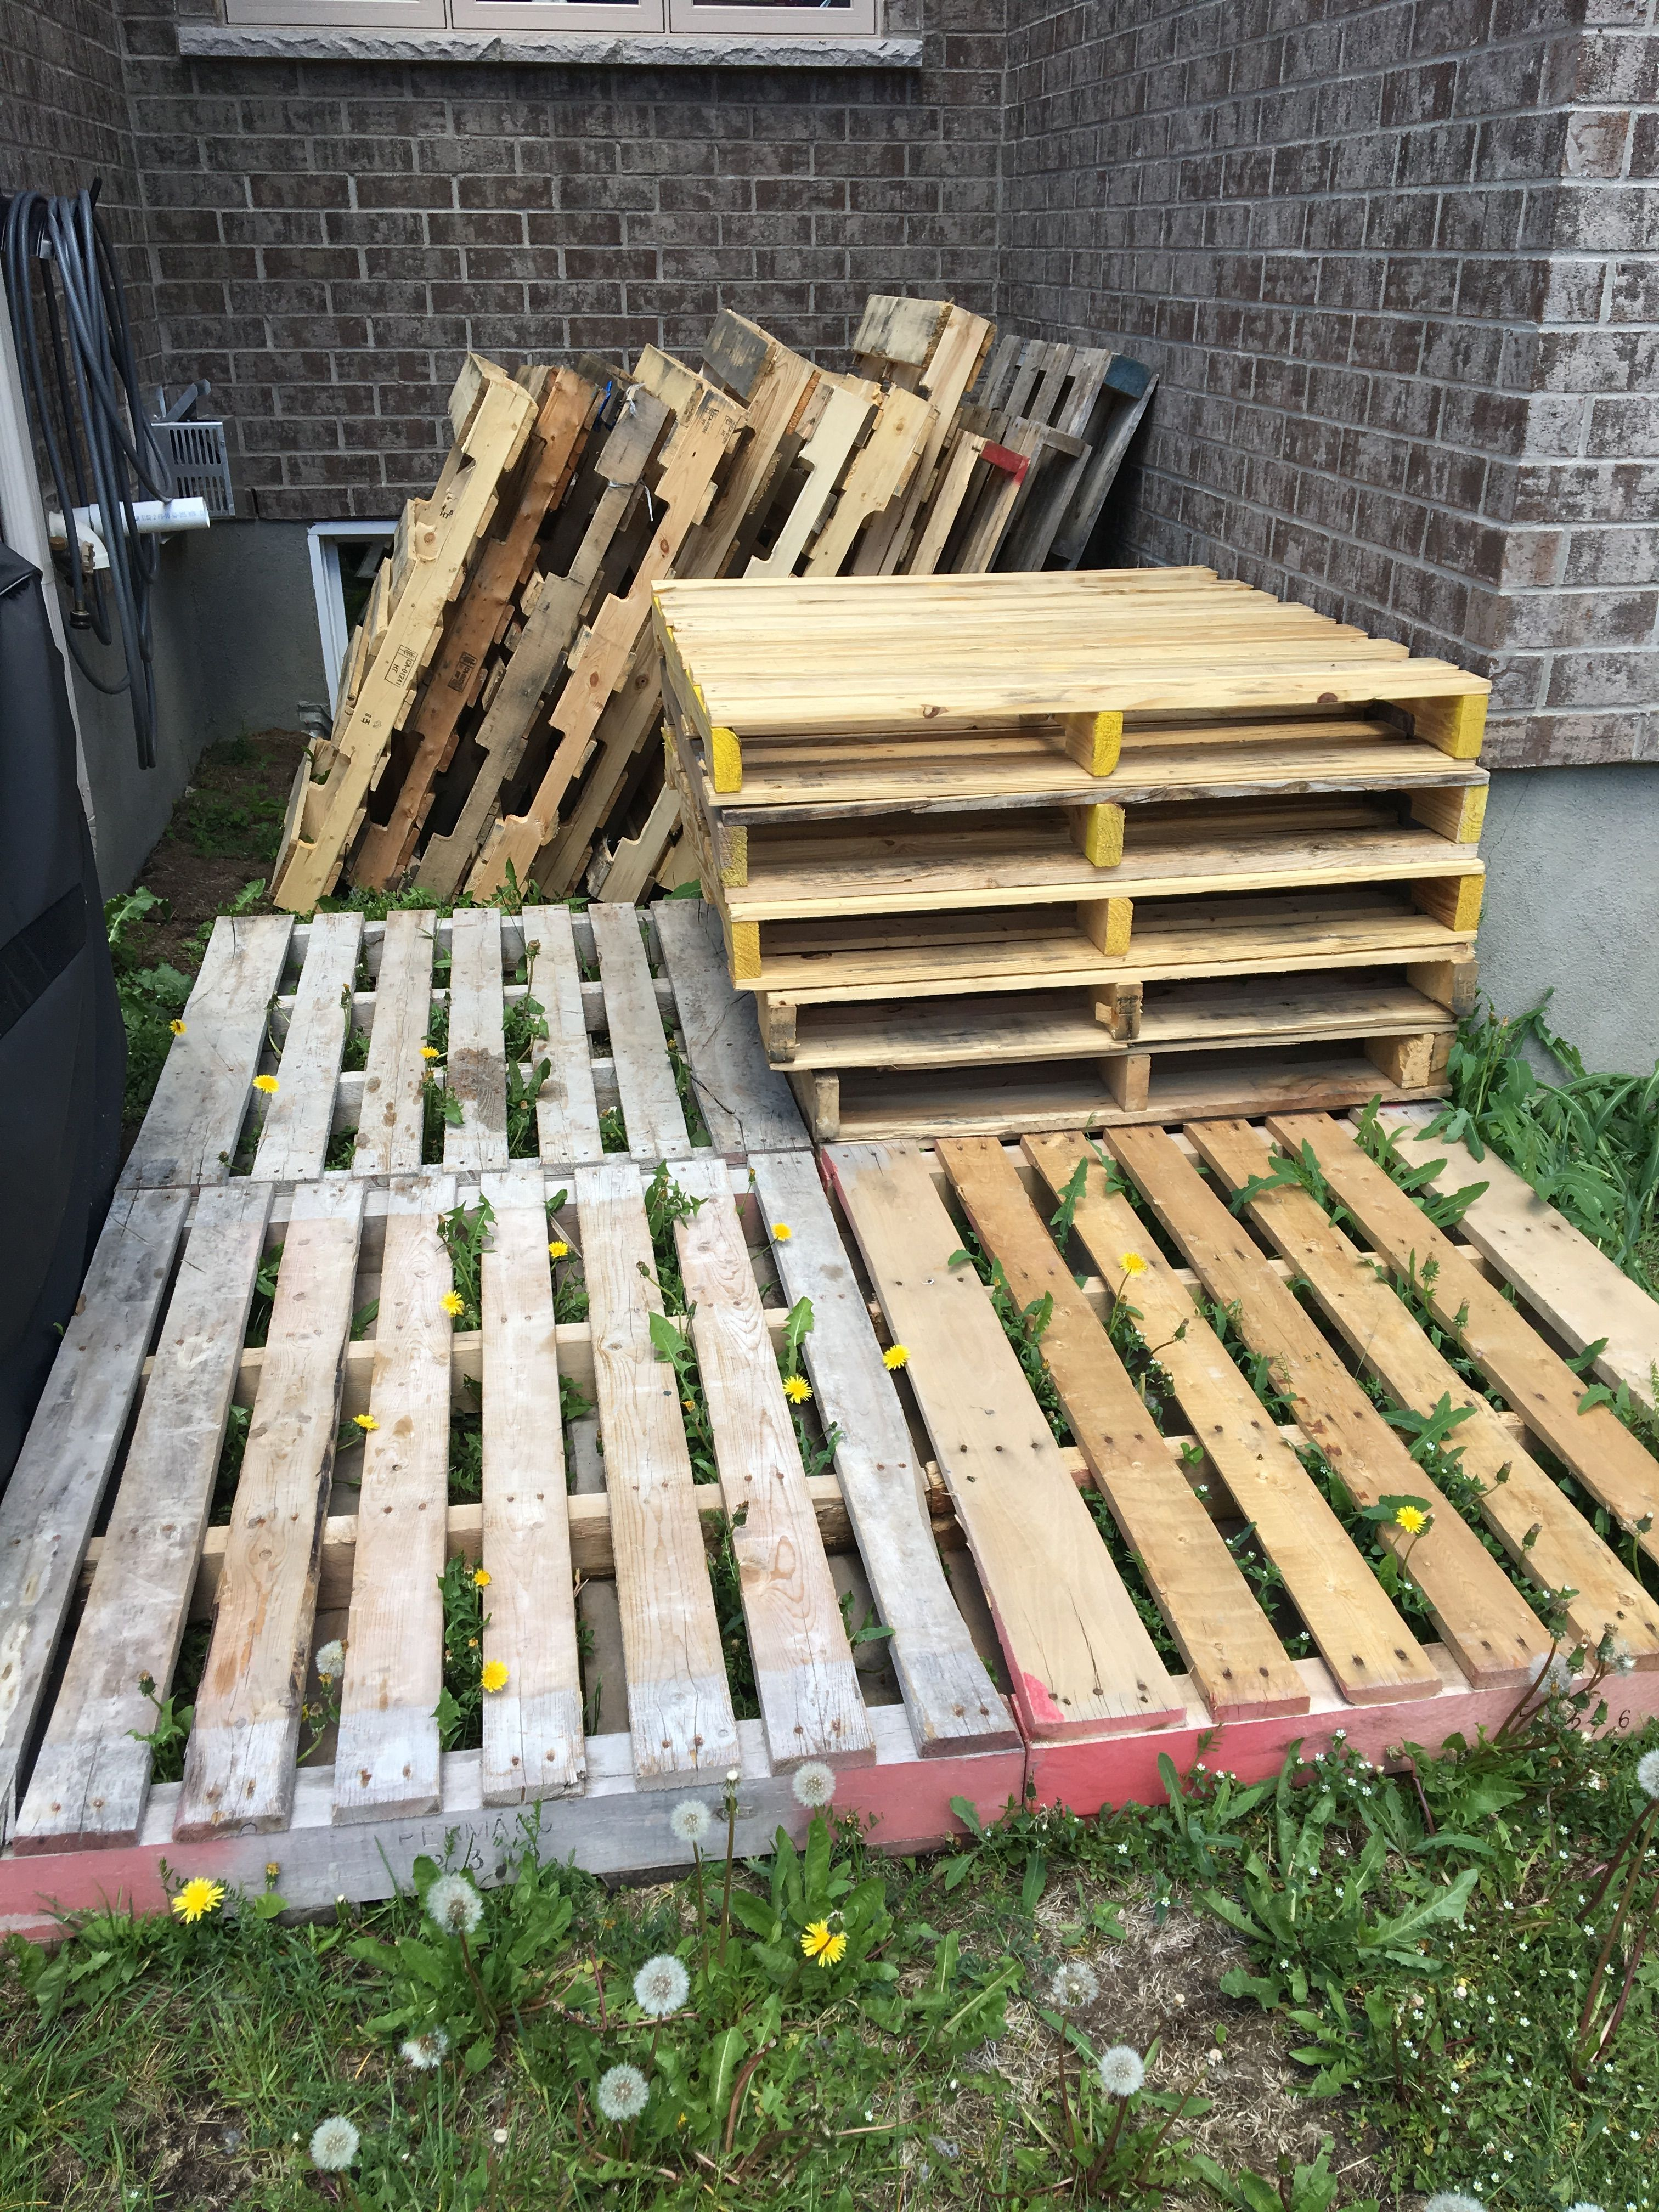 Here is the collection of pallets we gathered for the ...